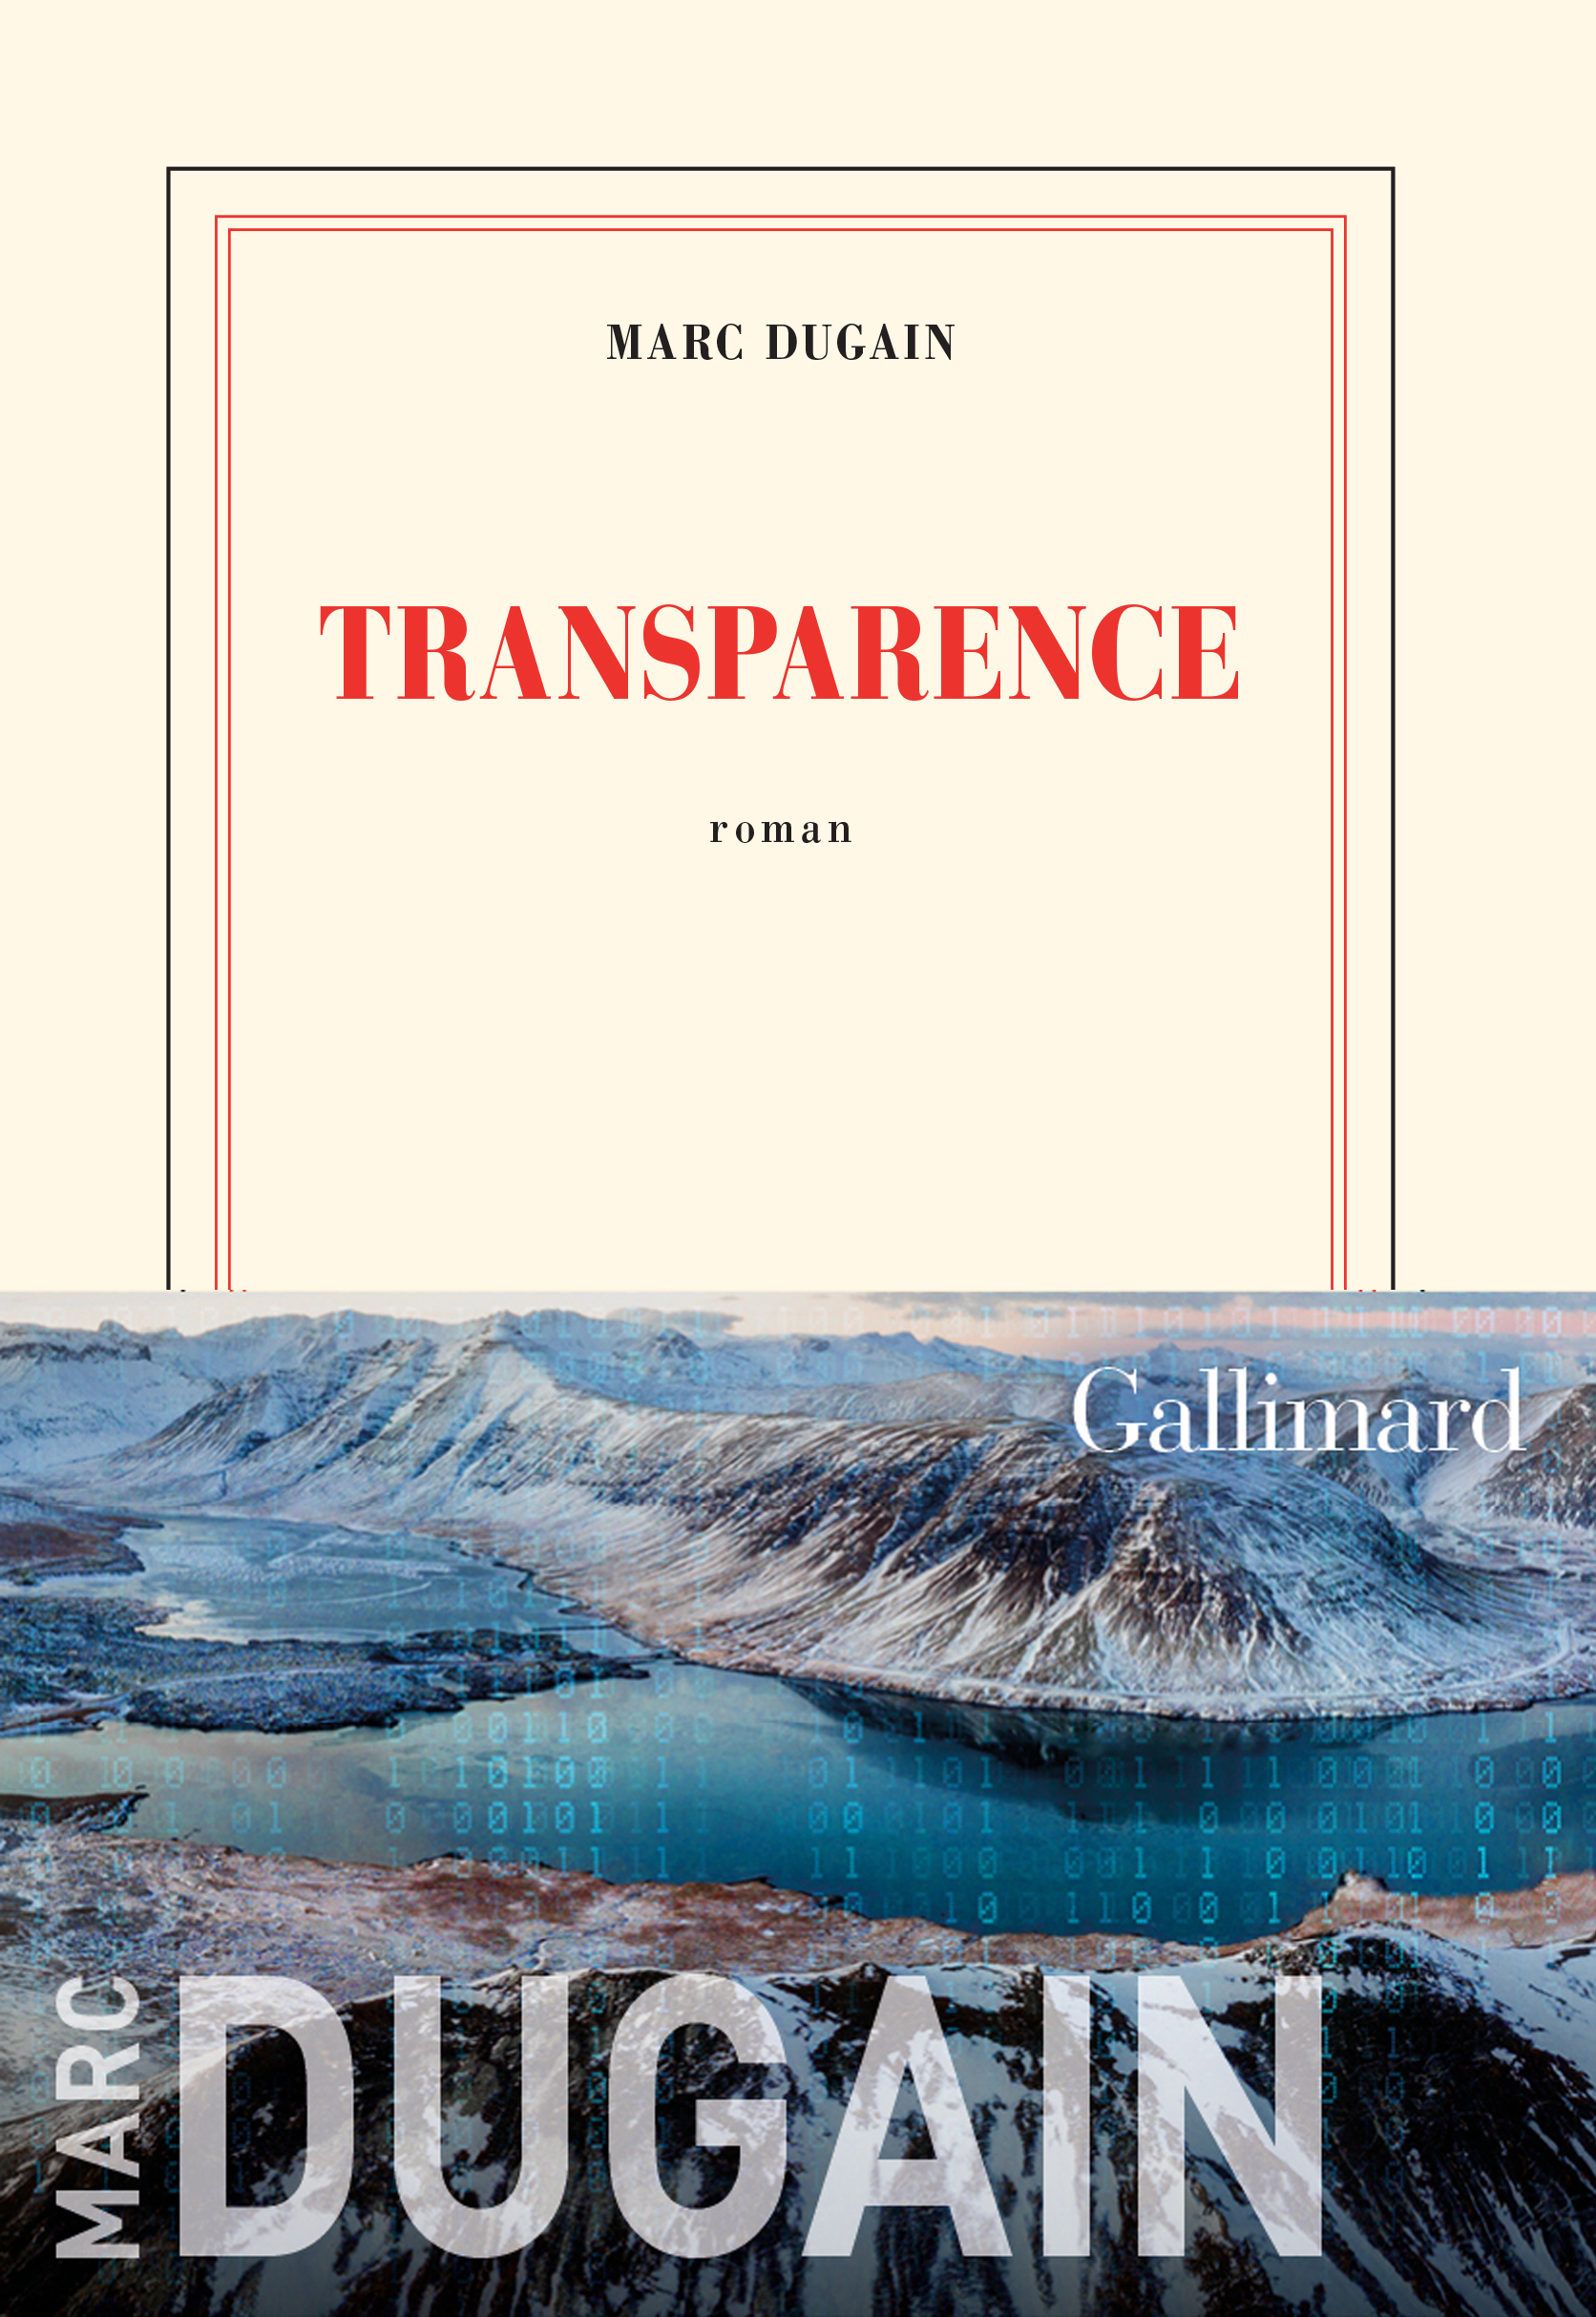 couverture transparence dugain